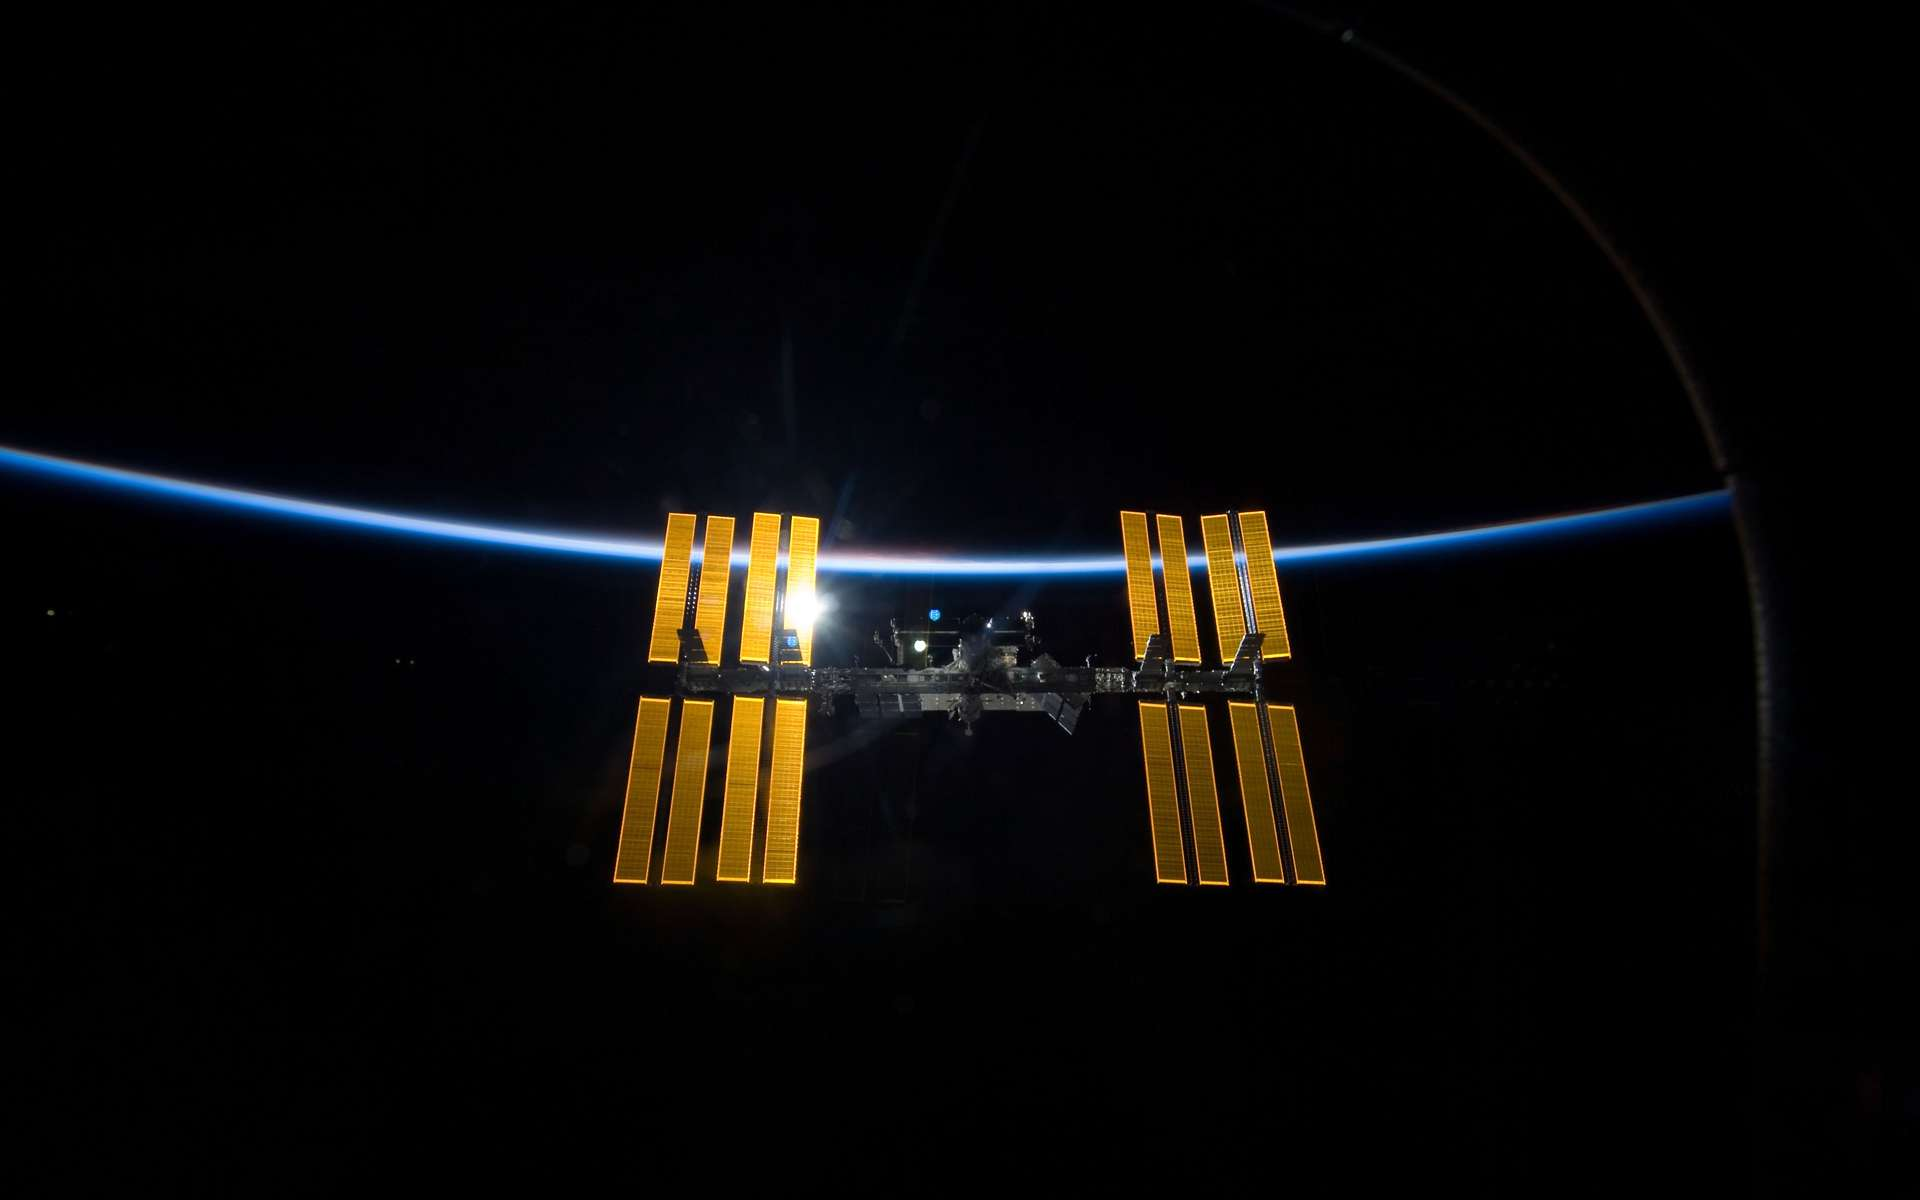 Vue de la Station spatiale internationale. © Nasa